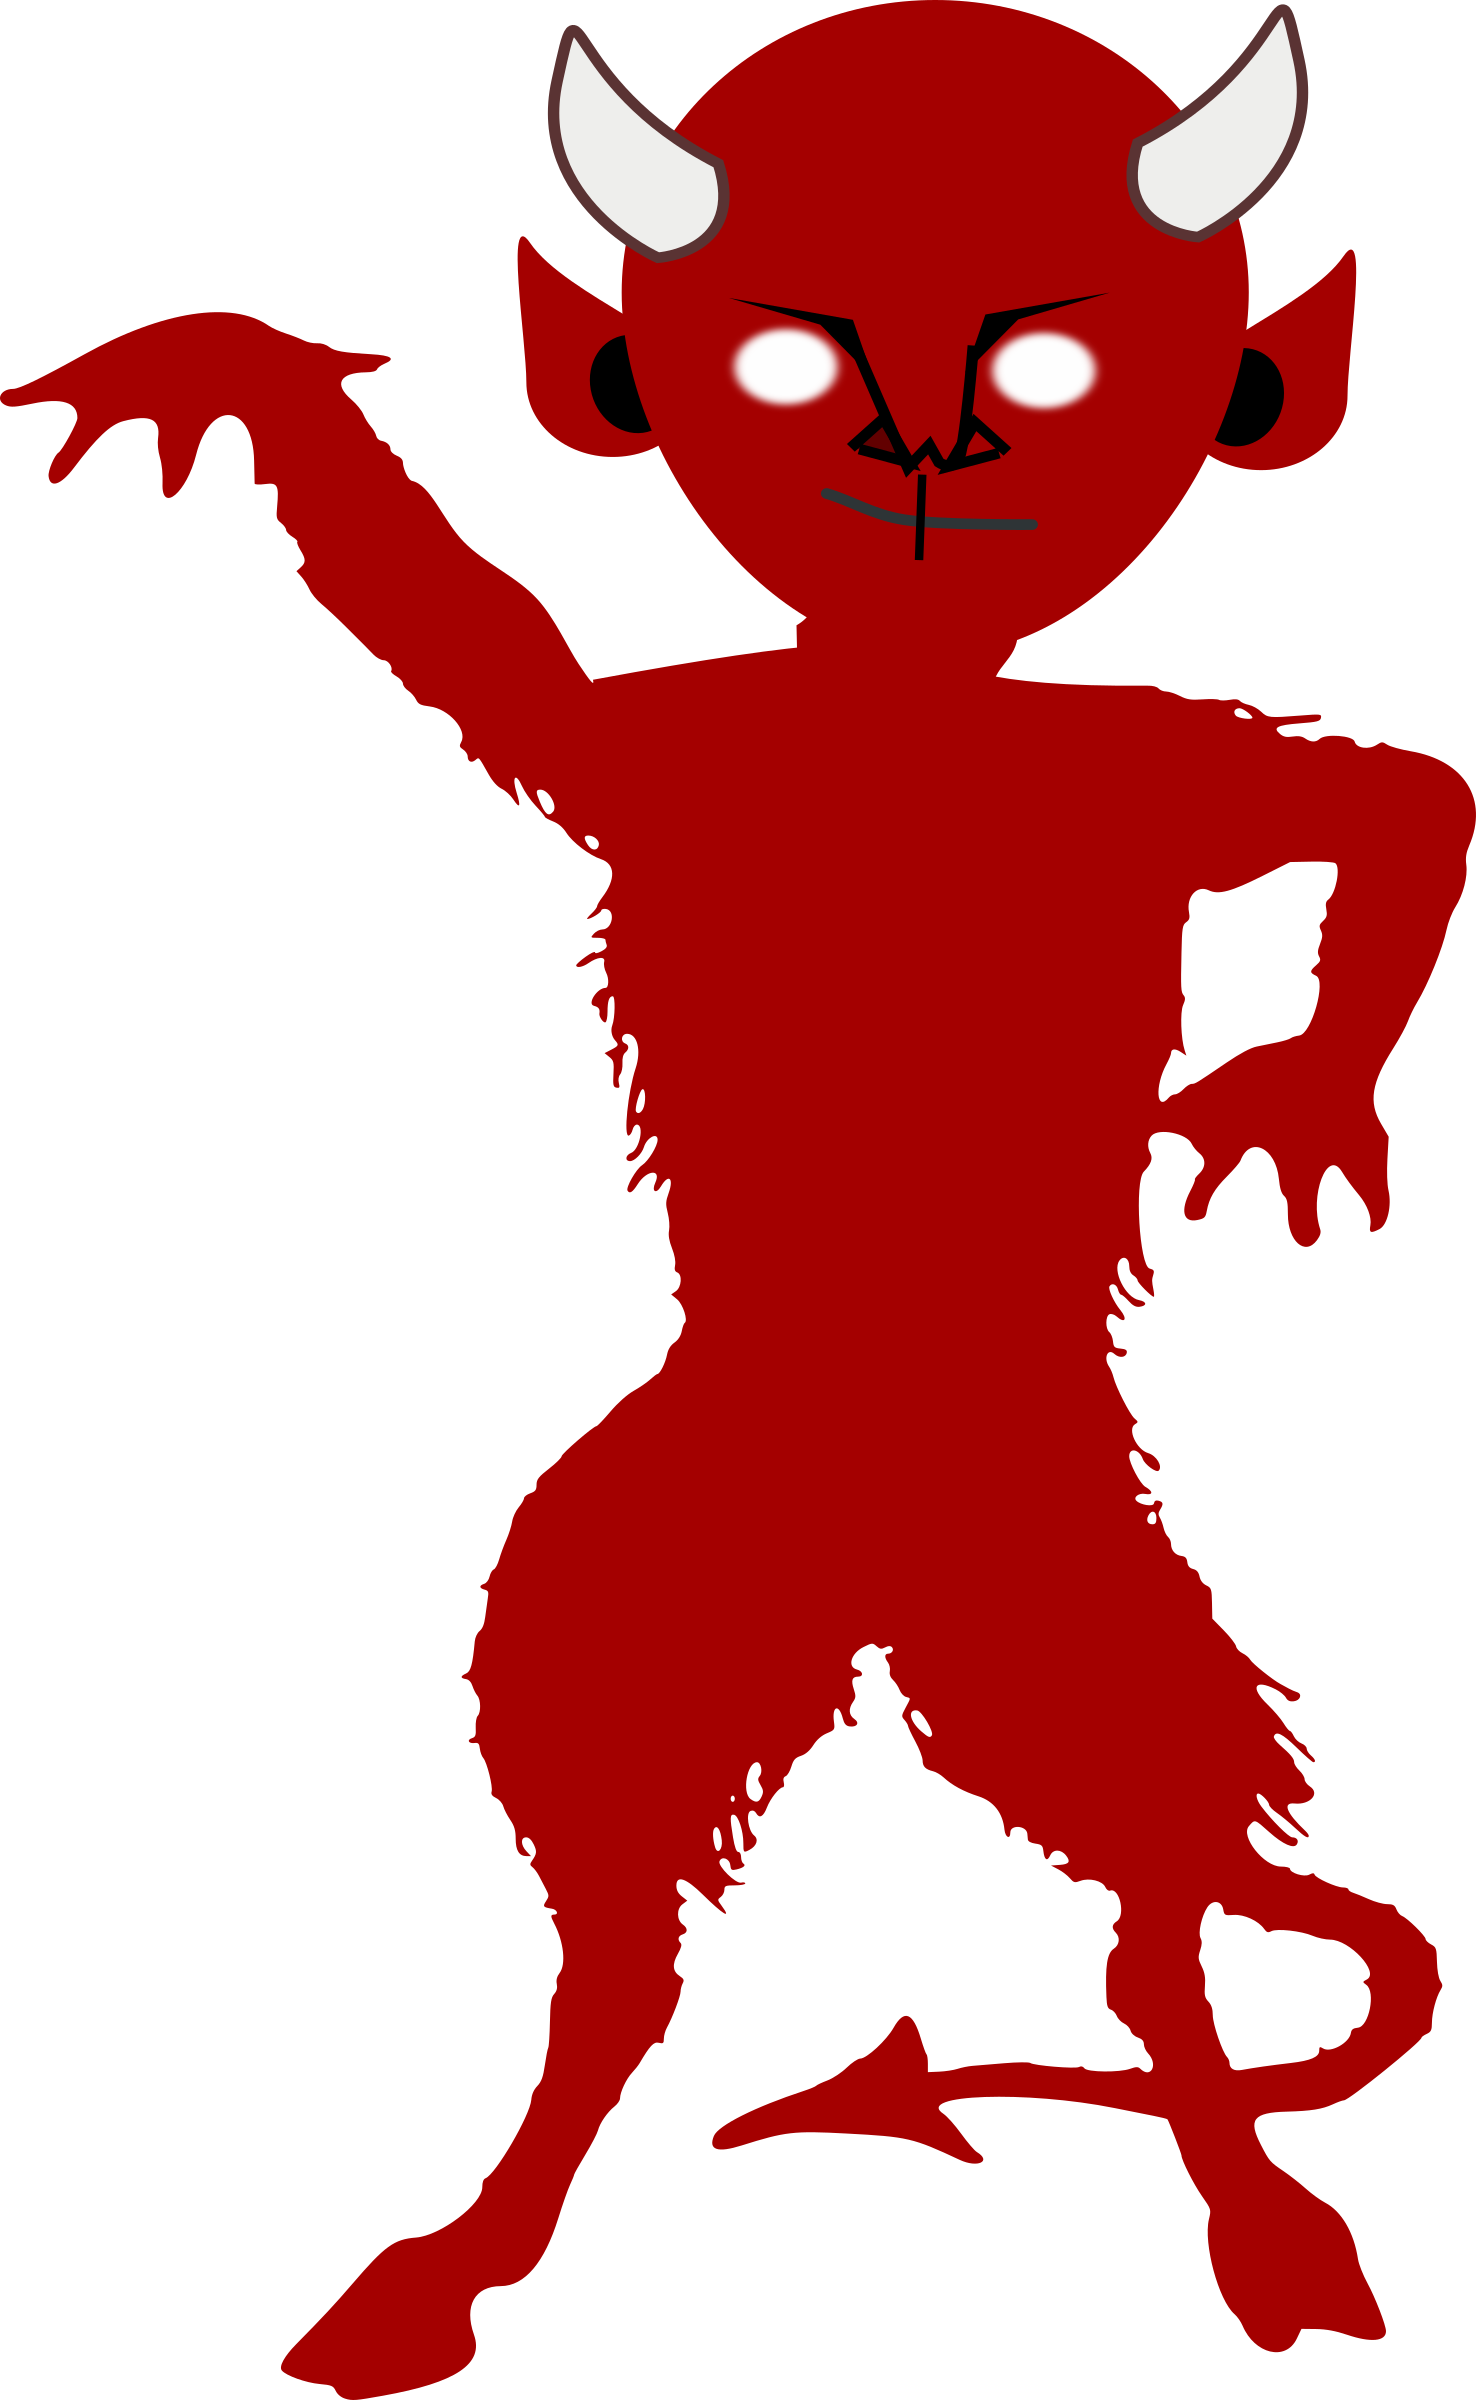 Silhouette at getdrawings com. Demon clipart protected clipart royalty free library